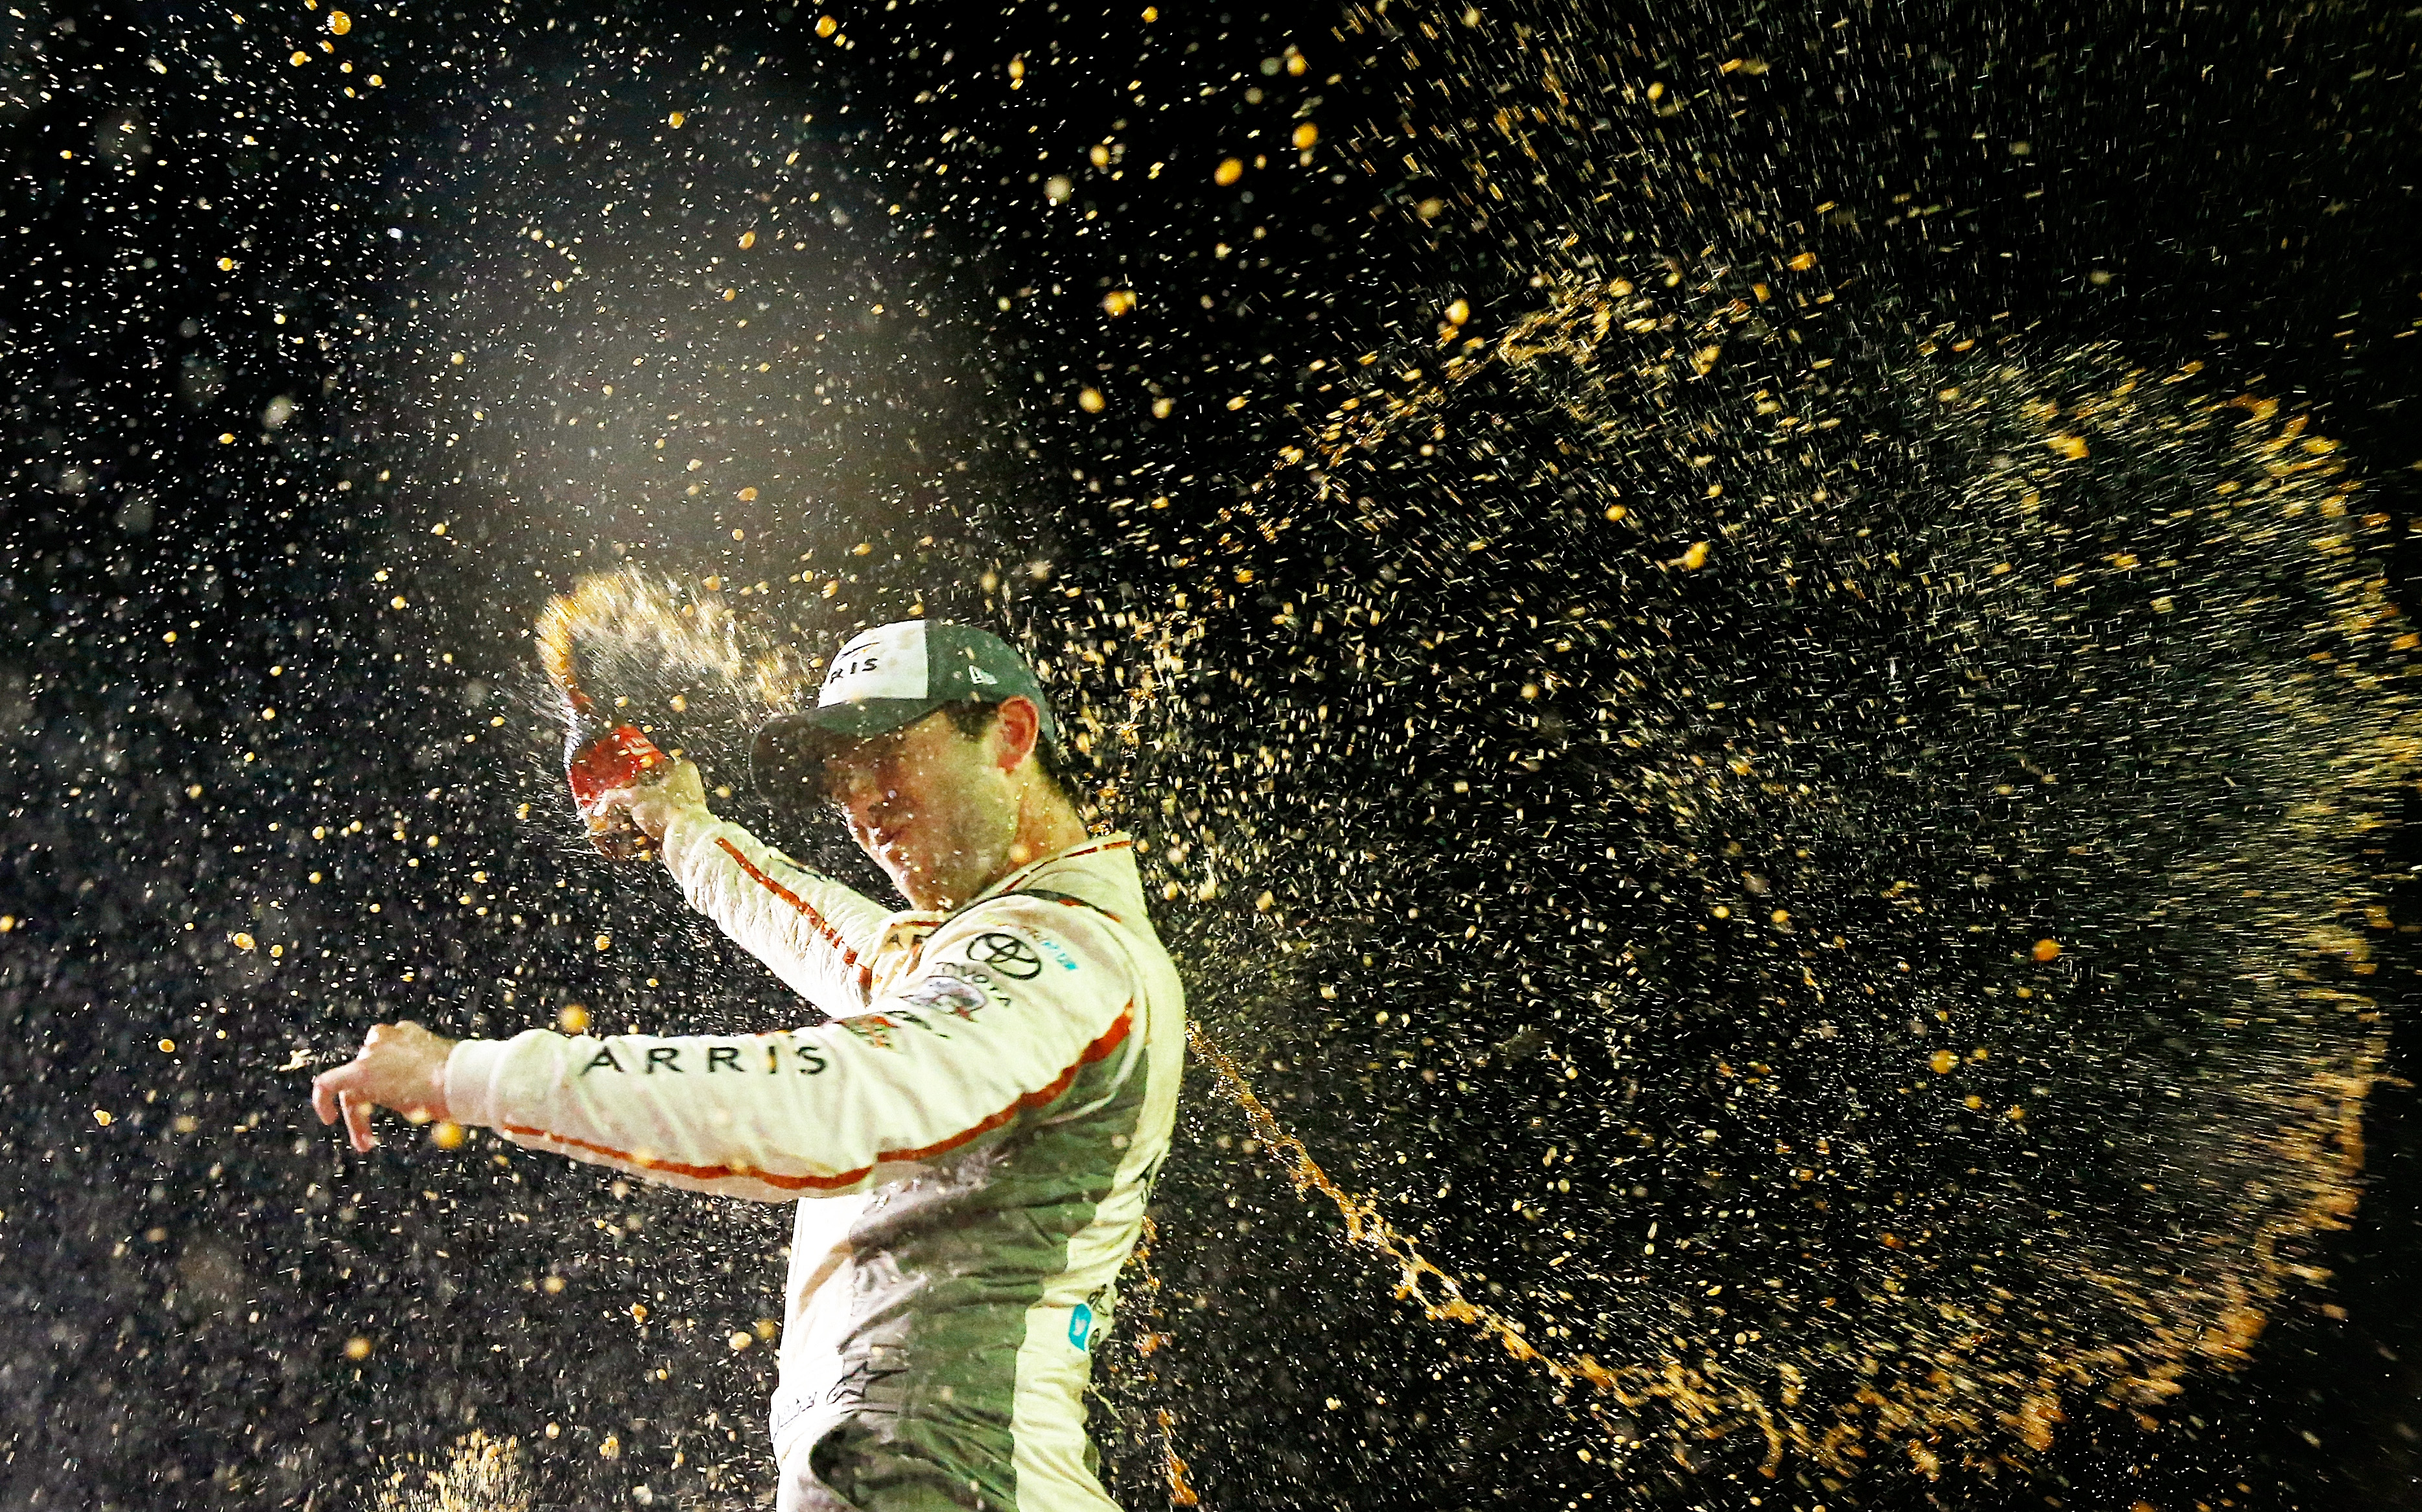 HOMESTEAD, FL - NOVEMBER 19:  Daniel Suarez, driver of the #19 ARRIS Toyota, celebrates in Victory Lane after winning the NASCAR XFINITY Series Ford EcoBoost 300 and the NASCAR XFINITY Series Championship at Homestead-Miami Speedway on November 19, 2016 in Homestead, Florida.  (Photo by Jonathan Ferrey/NASCAR via Getty Images)